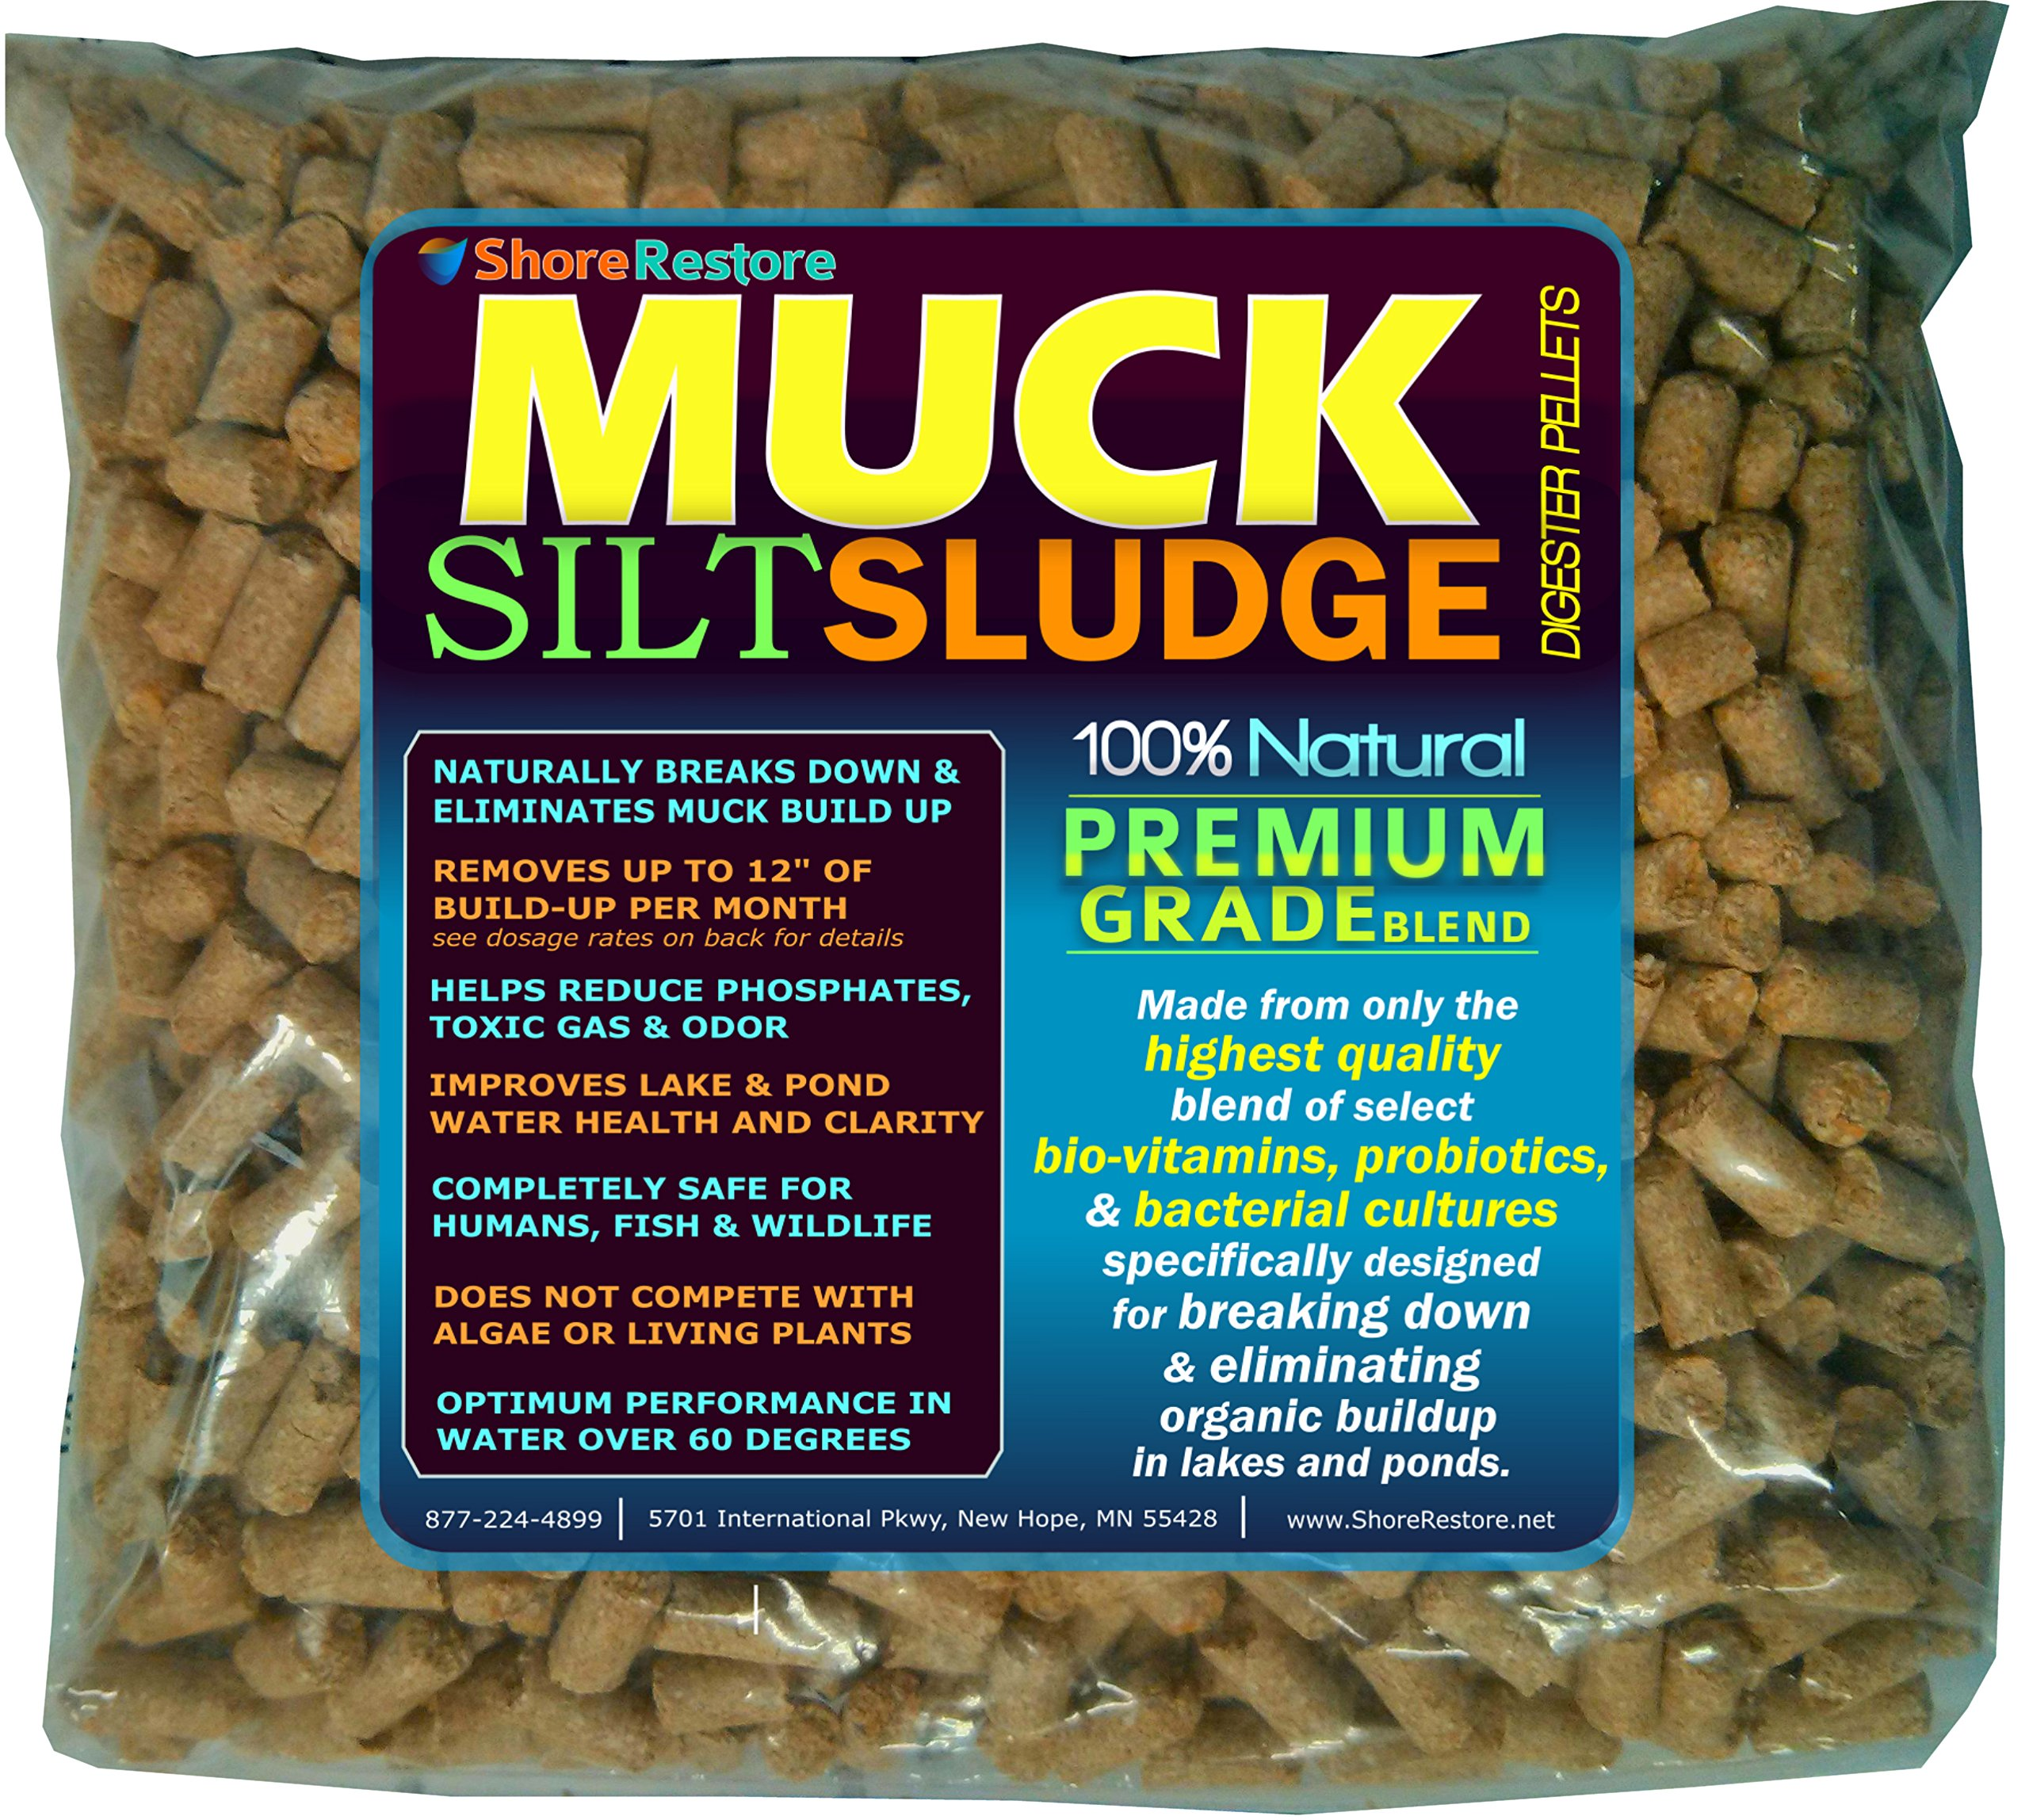 ShoreRestore - Eco Friendly MUCK SILT SLUDGE Digester Pellets Bacteria Enzymes Reduce Control Organic Build-up in Lake and Pond (3lbs) by Shore Restore